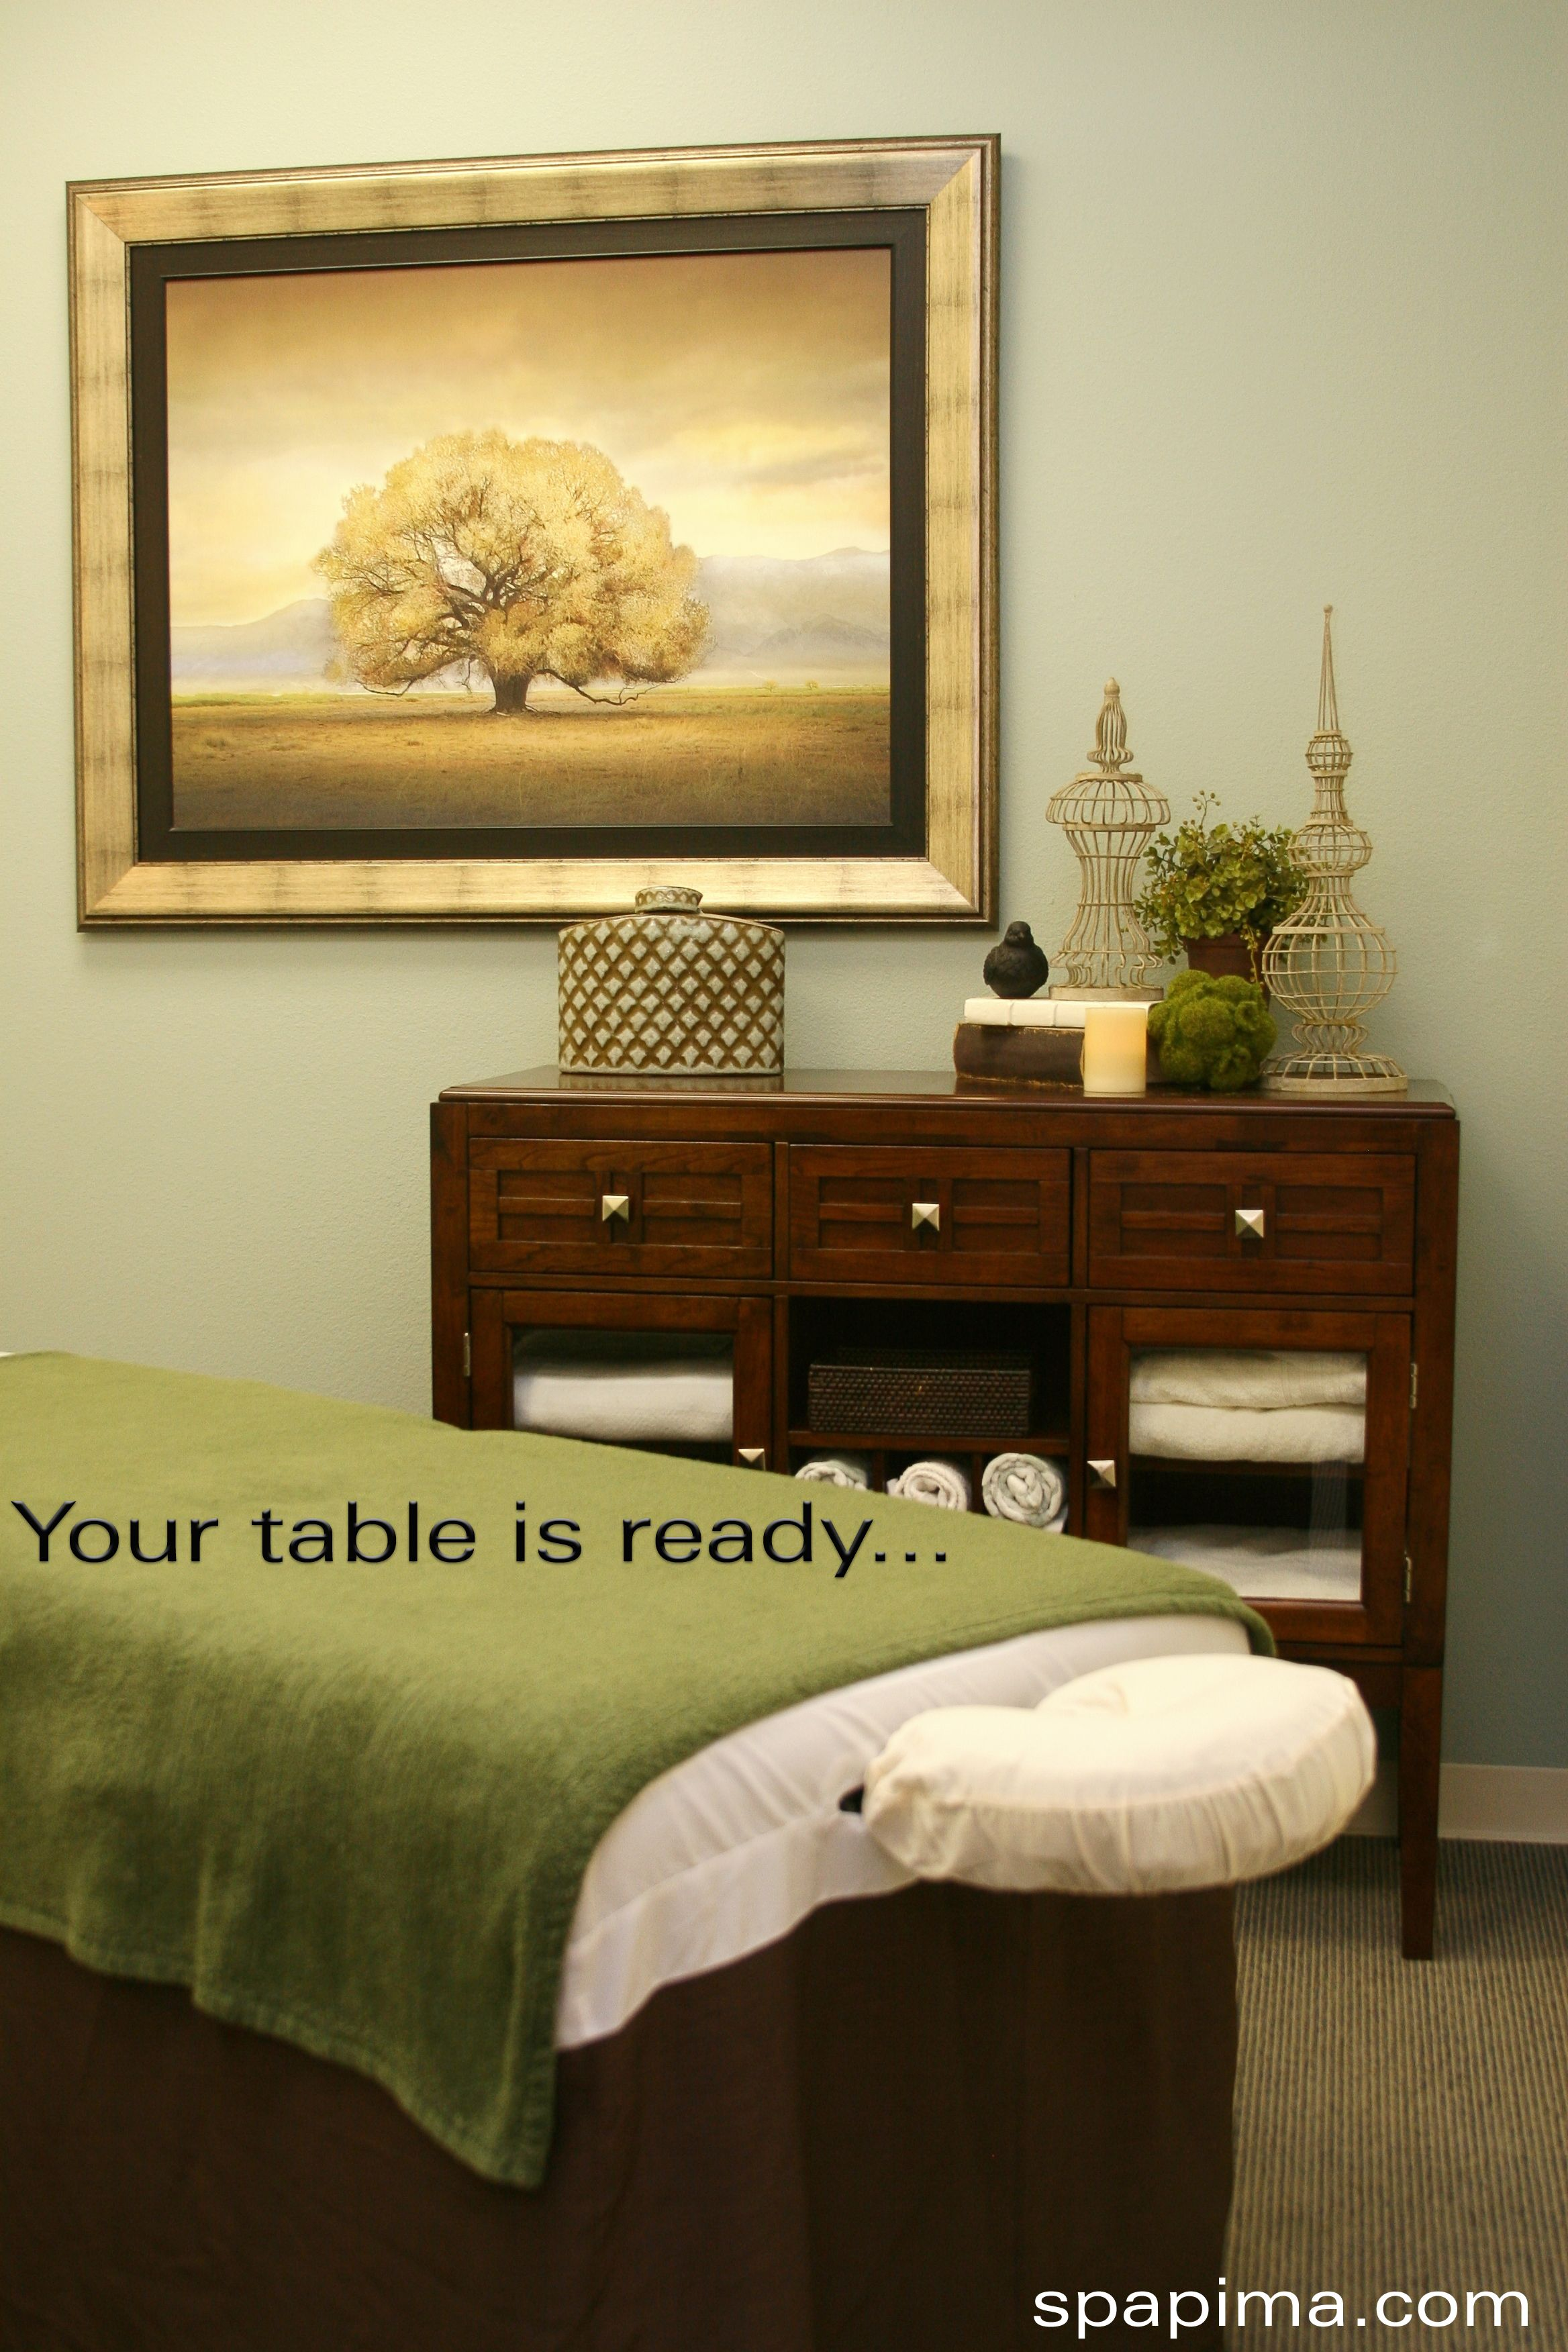 Day Spa  Massage Therapy Room  Esthetician Room  Aesthetician Room  Esthetics -4148